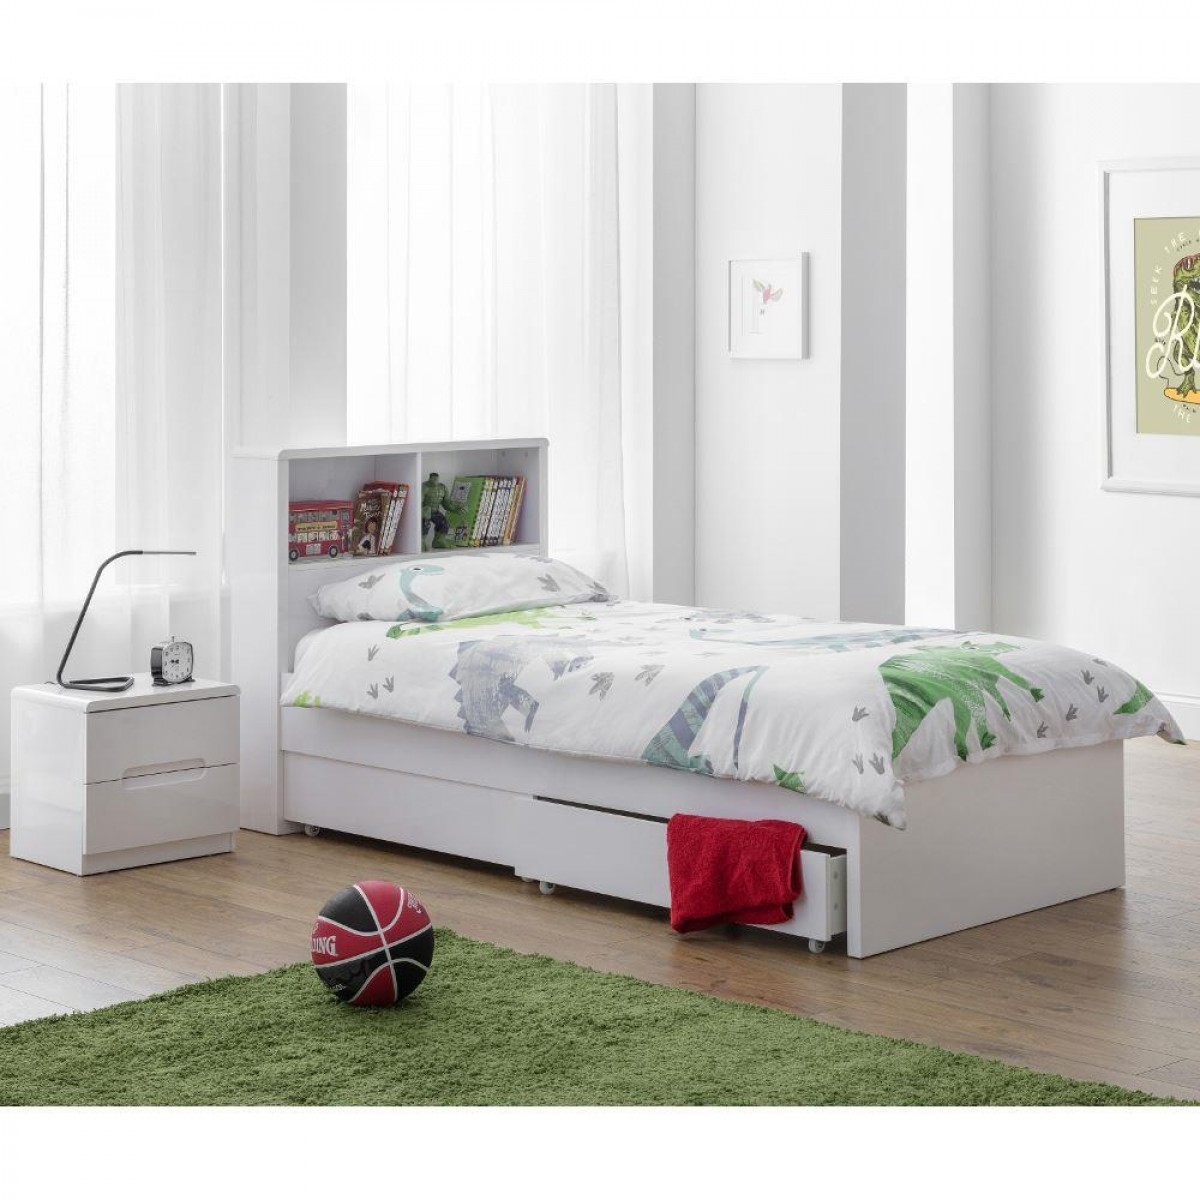 Manhattan Gloss White Wooden 2 Drawer Storage Bookcase Bed